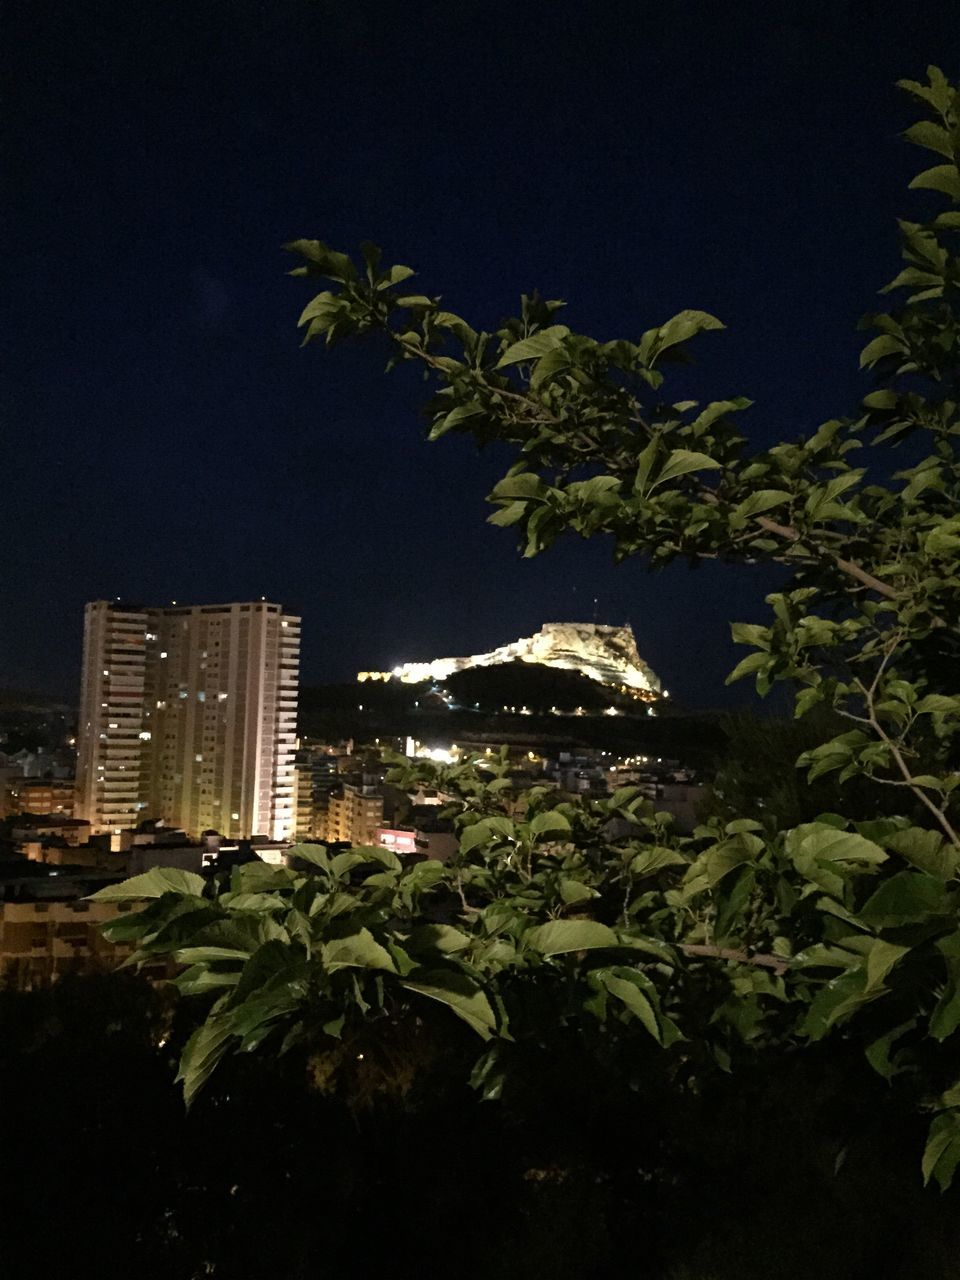 architecture, growth, city, night, urban, no people, cityscape, tree, building exterior, outdoors, modern, nature, high, sky